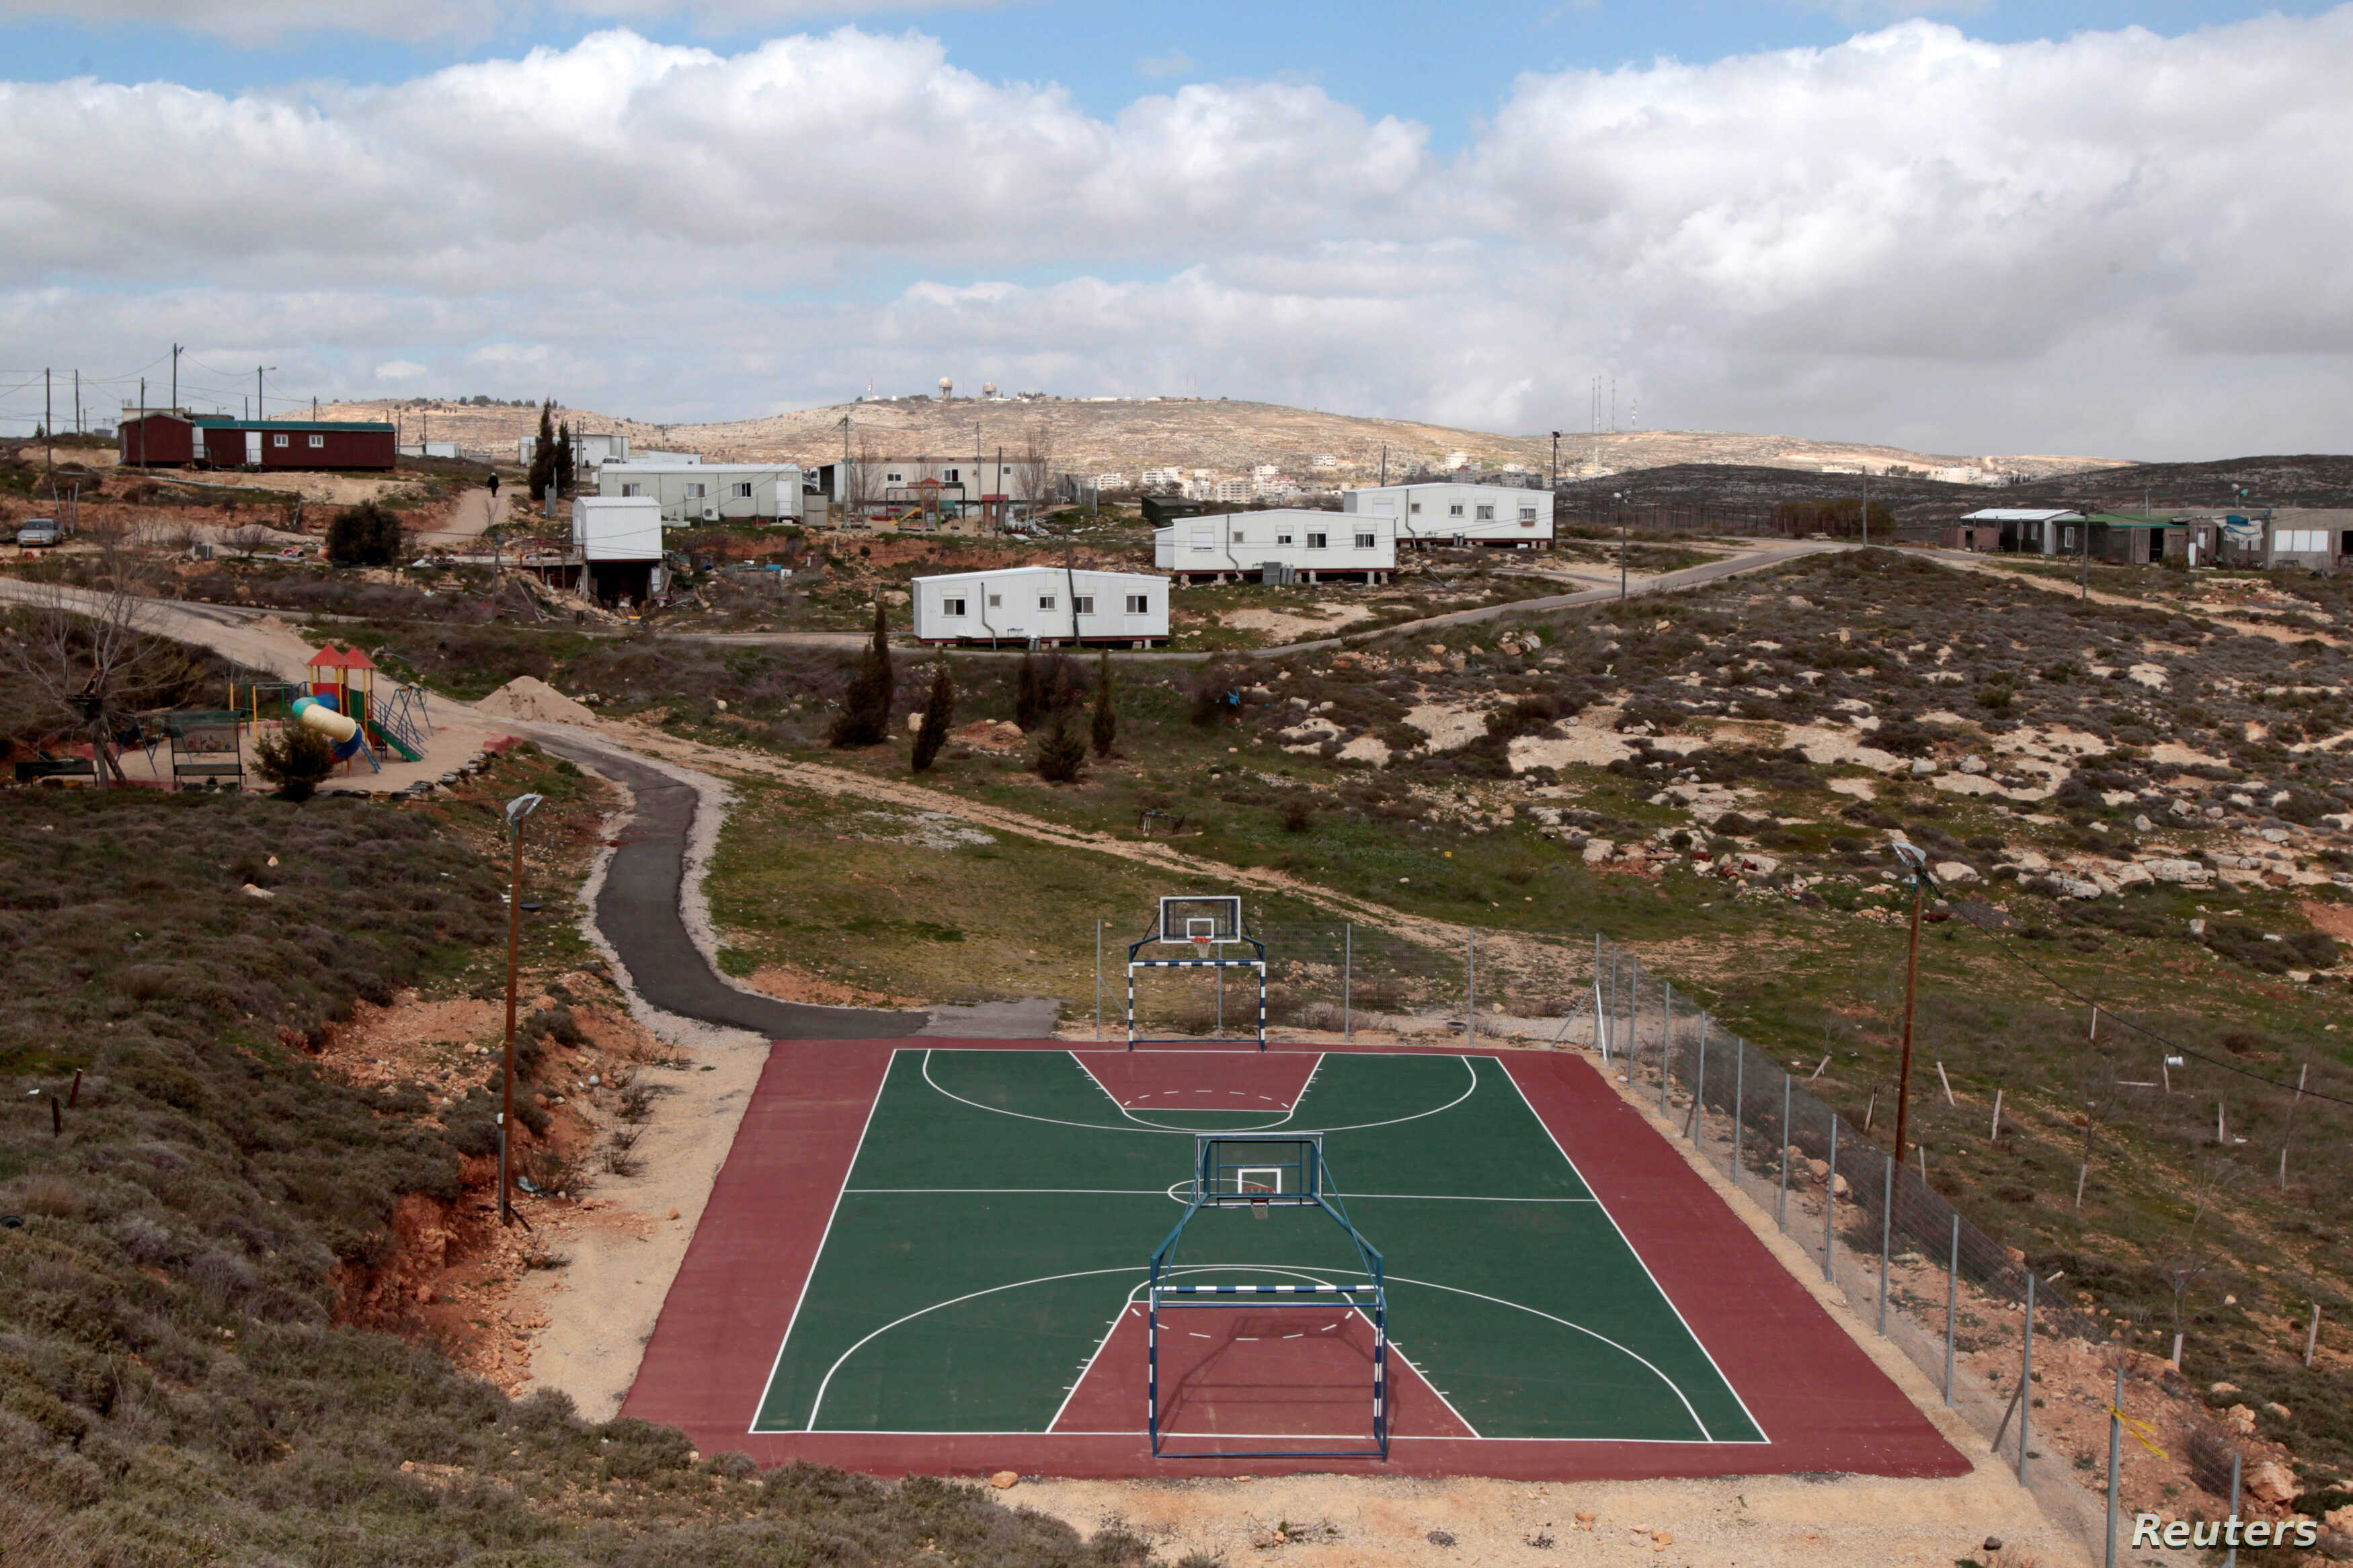 FILE - A basketball court is seen in the settler outpost of Amona near the Jewish settlement of Ofra, north of Ramallah, March 1, 2011.